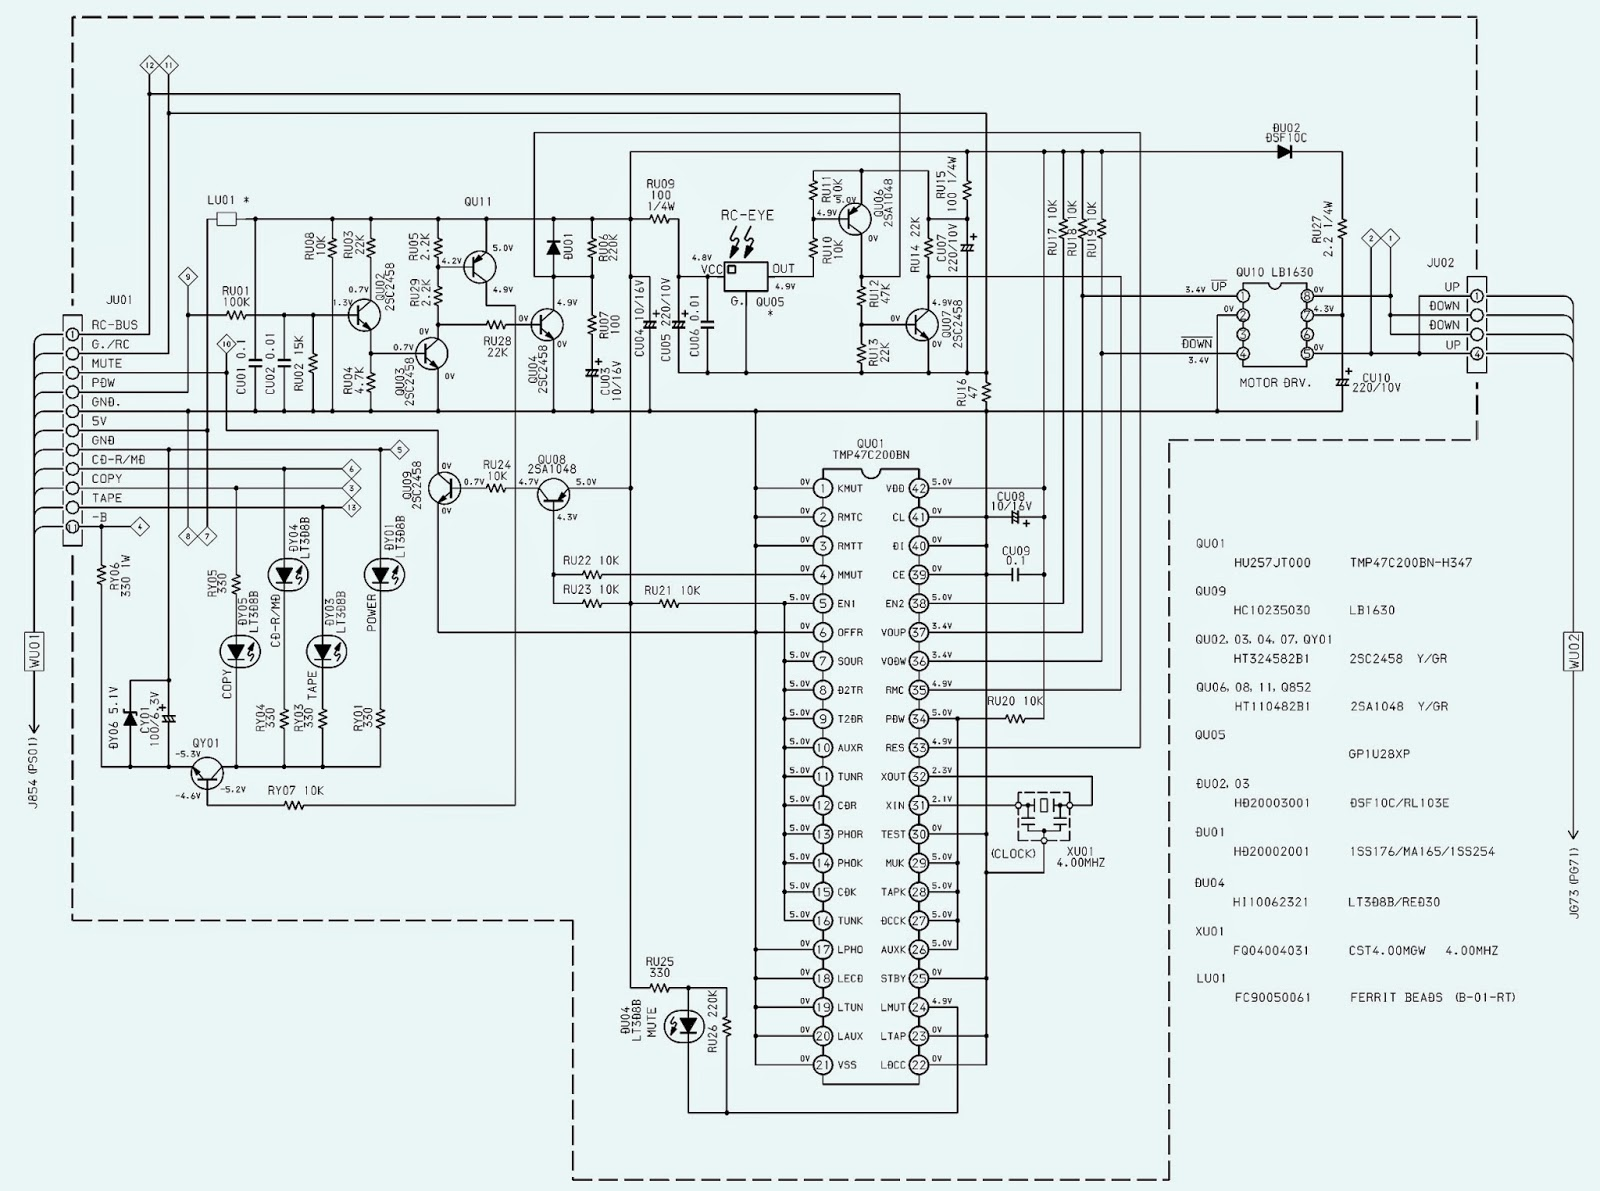 Wiring & diagram Info: MARANTZ PM6010 OSE SCHEMATIC Wiring diagram Schematic Integrated Amplifier